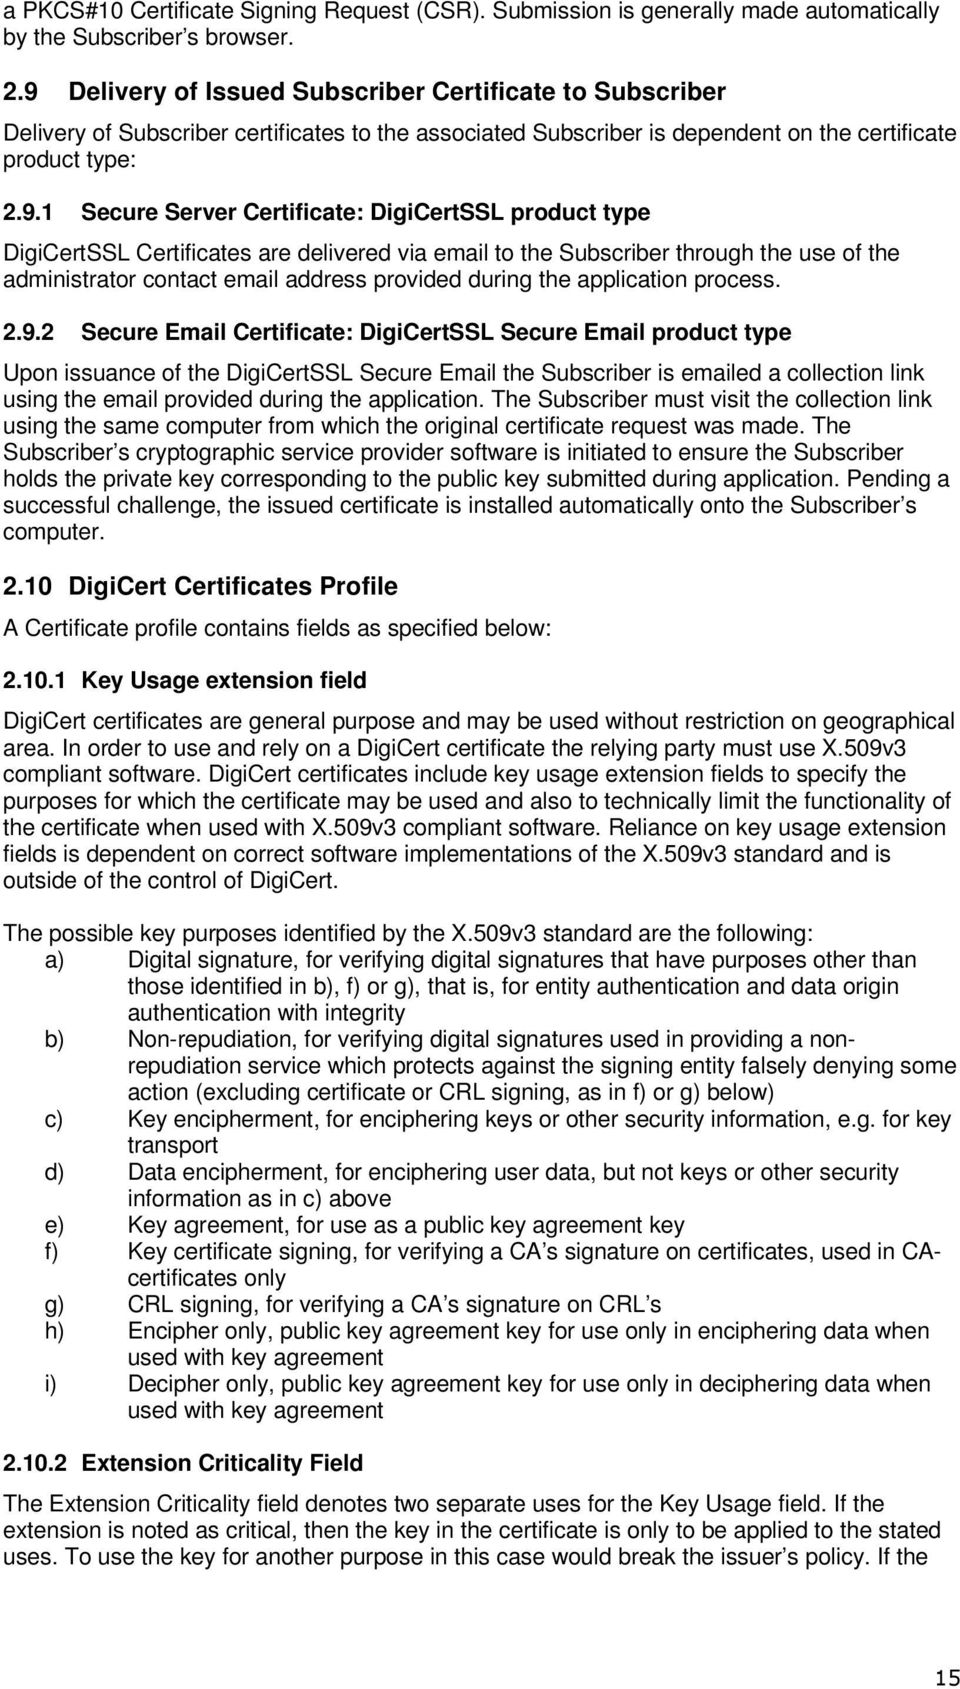 Certificate: DigiCertSSL product type DigiCertSSL Certificates are delivered via email to the Subscriber through the use of the administrator contact email address provided during the application